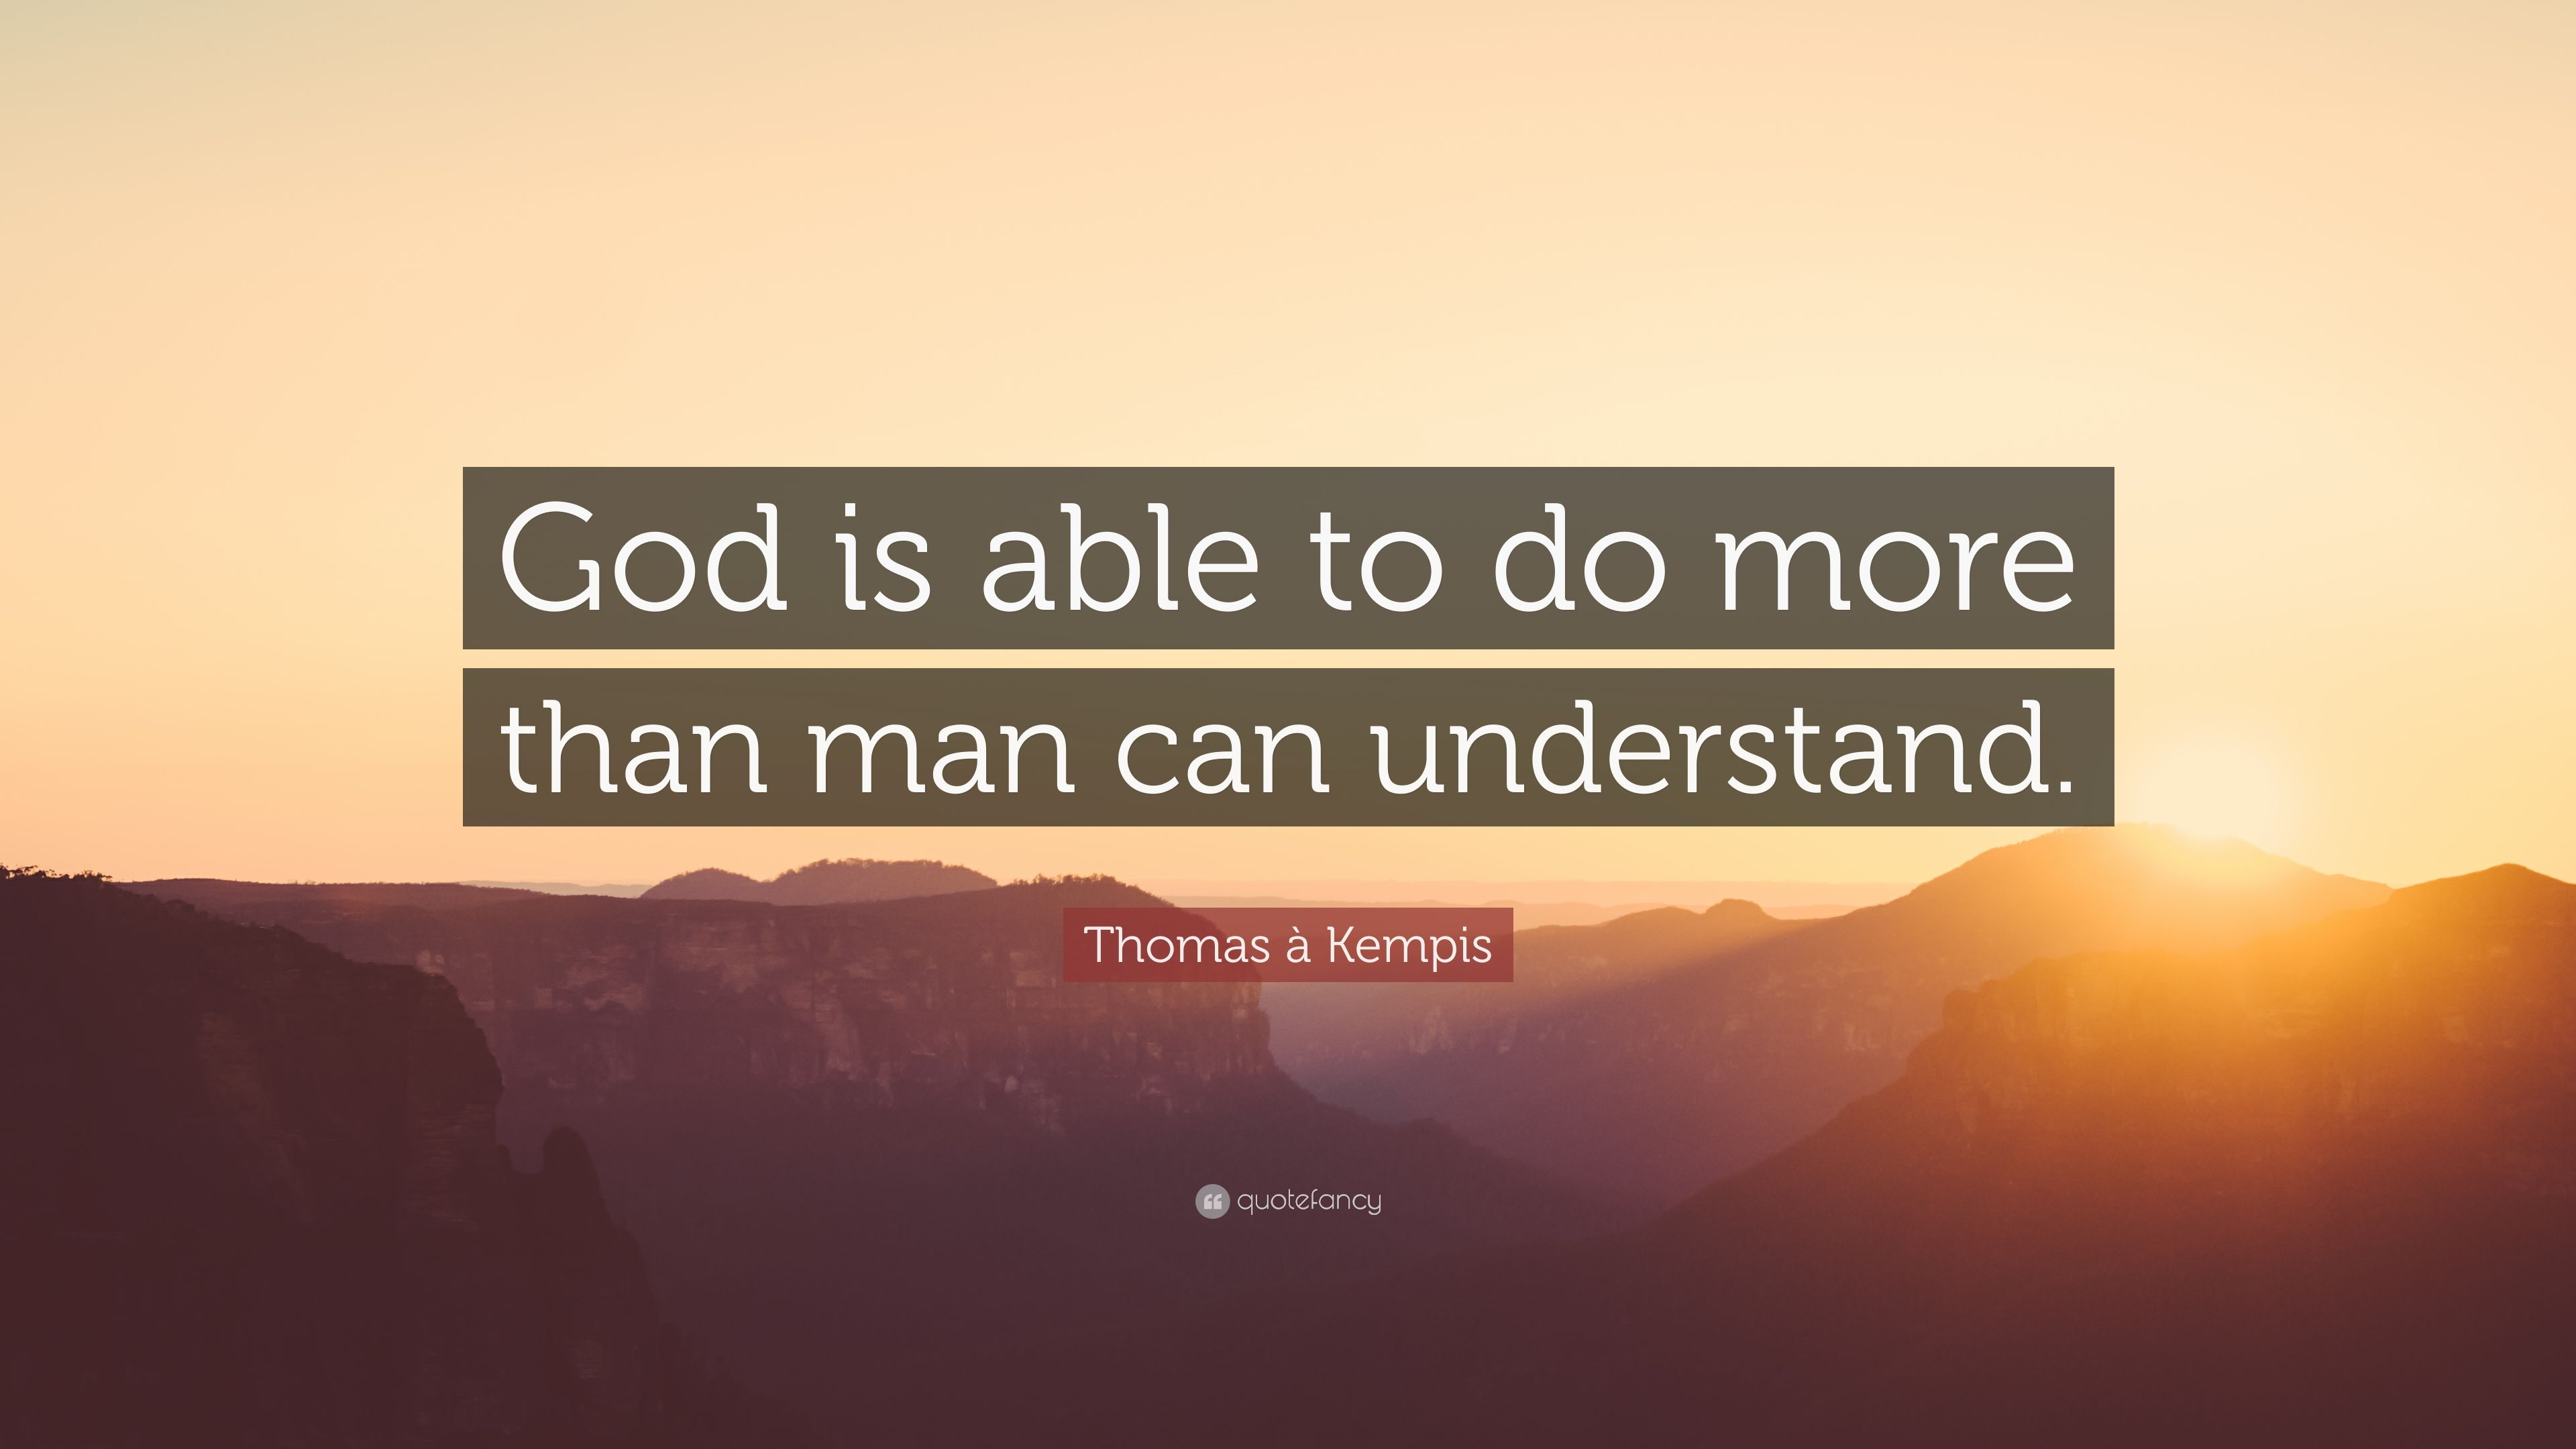 Thomas à Kempis Quote: U201cGod Is Able To Do More Than Man Can Understand